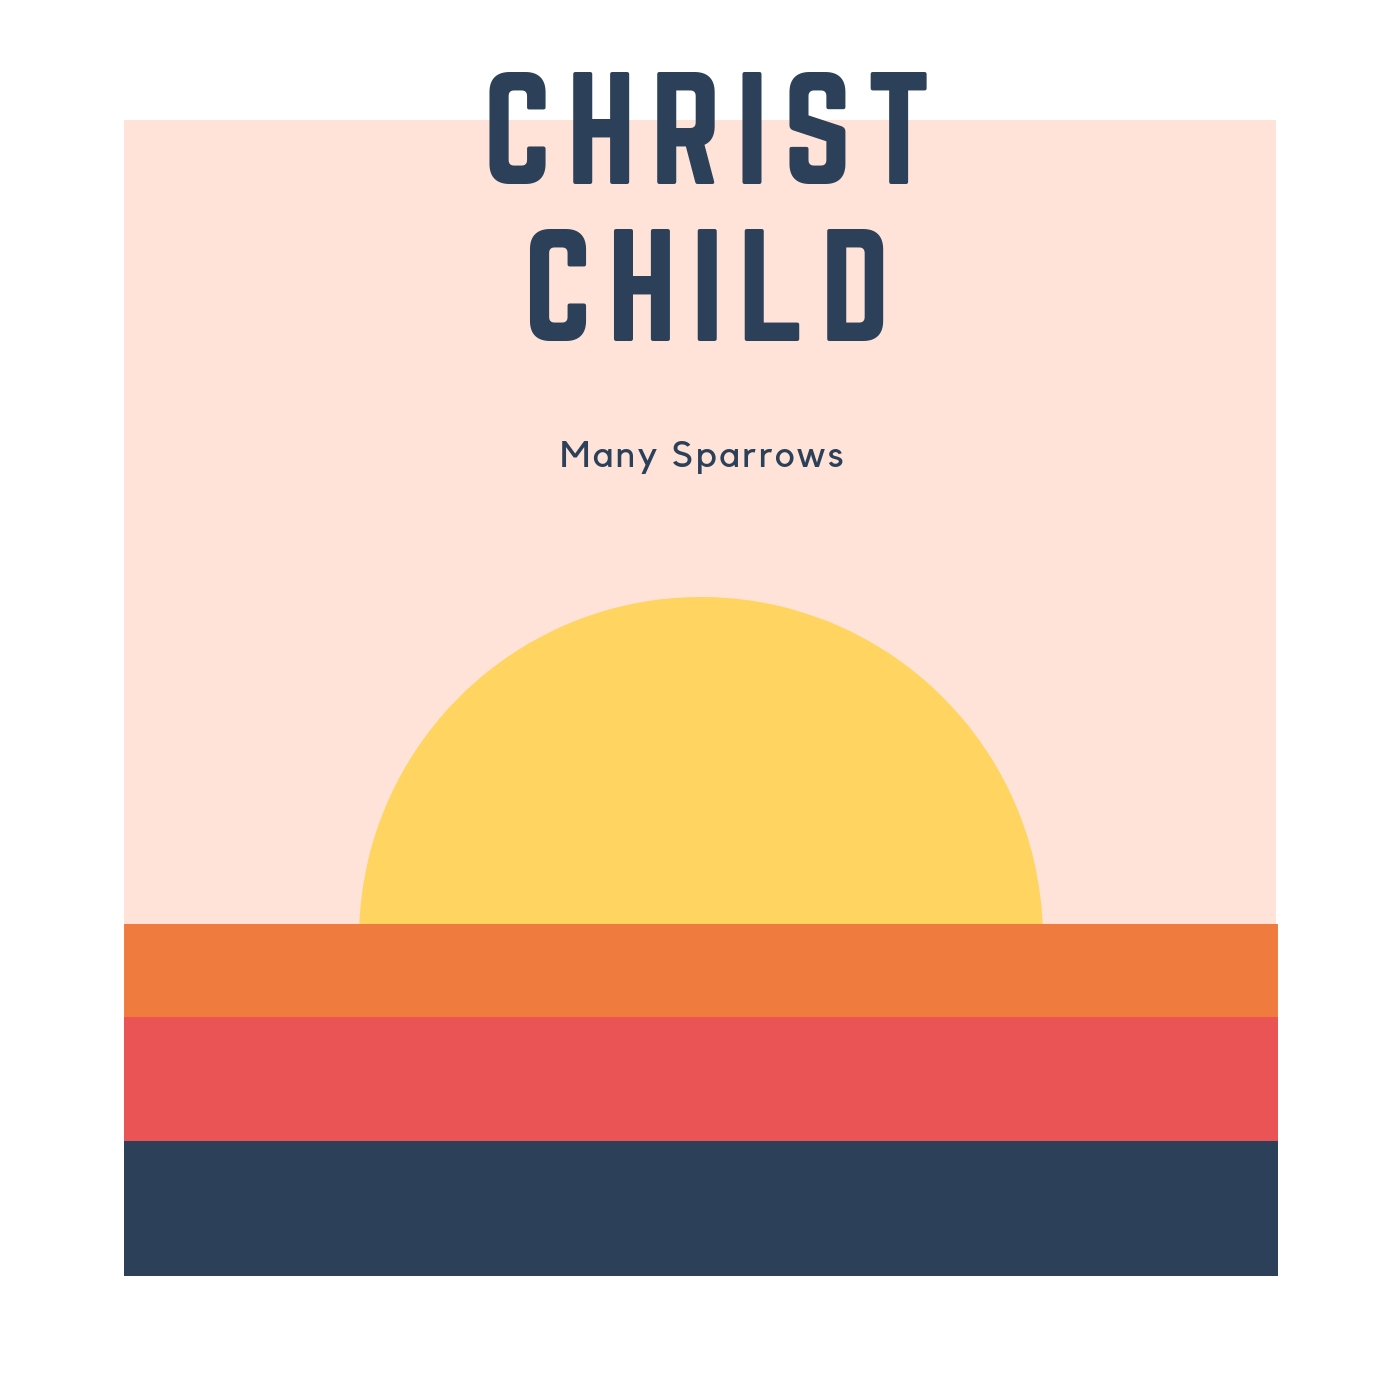 """New Single Available! - We are so excited to announce the release of the first single off of our upcoming album. """"Christ Child"""" is a celebration of the birth of Christ, featuring music and lyrics by Daniel Wall. 100% of the proceeds go to benefit Love for the Least, a ministry to the refugees of Northern Iraq. We pray that this single will bless you, and fill you with the joy of Christ not only during the holidays, but all year long!"""